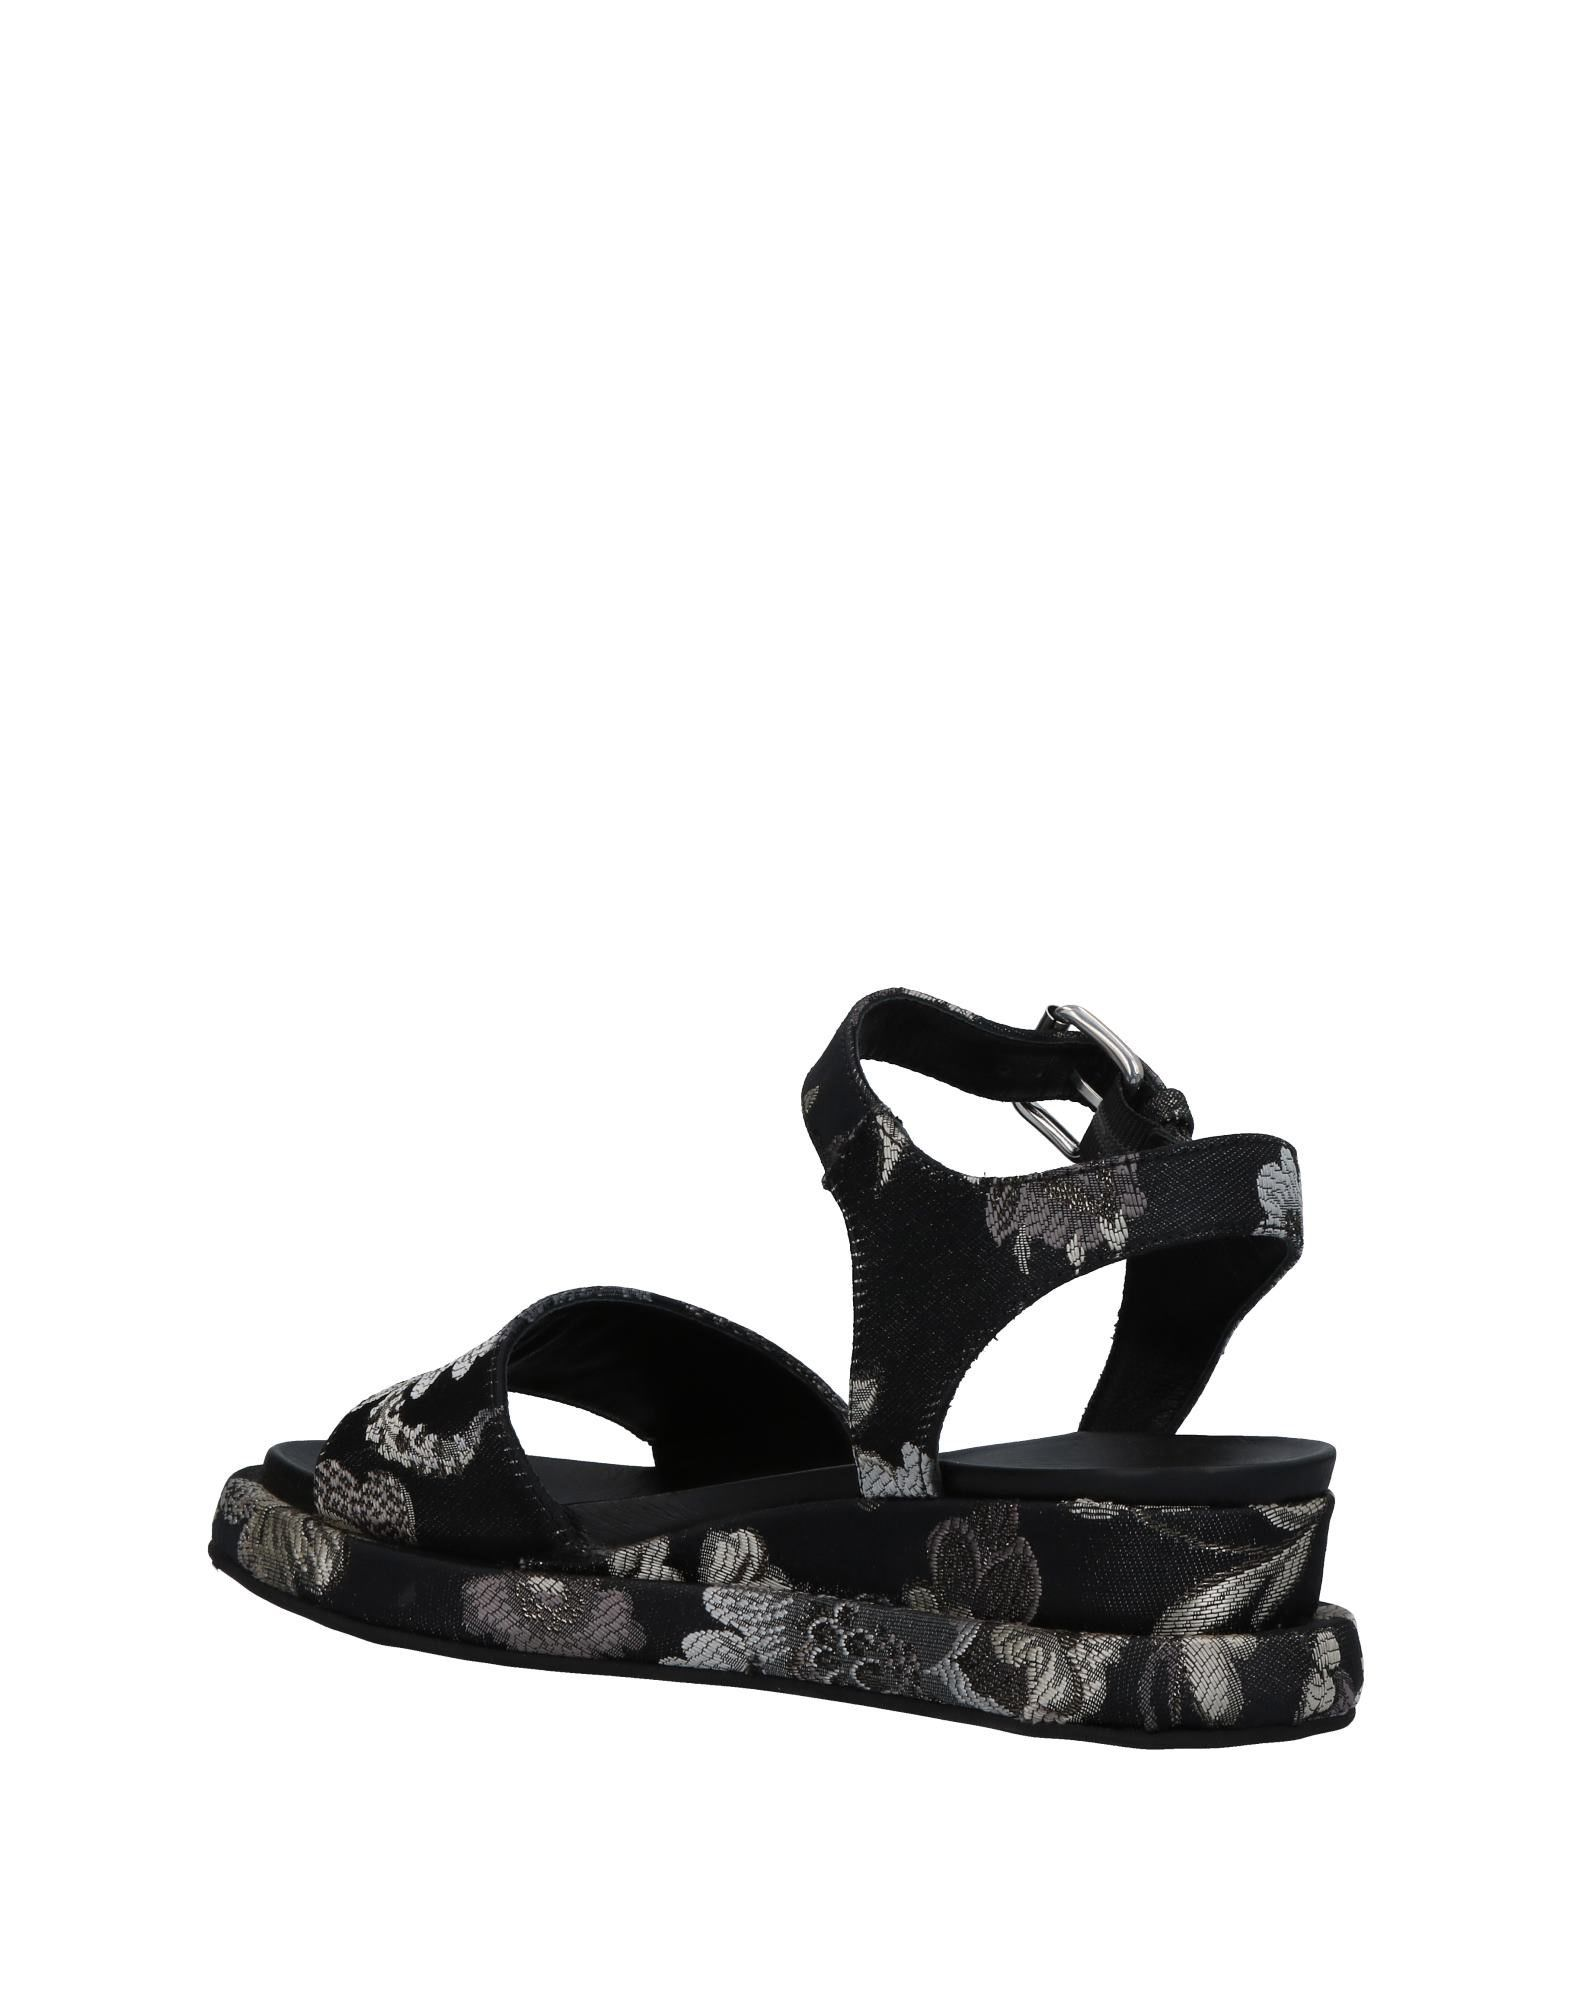 Sandales Strategia Femme - Sandales Strategia sur